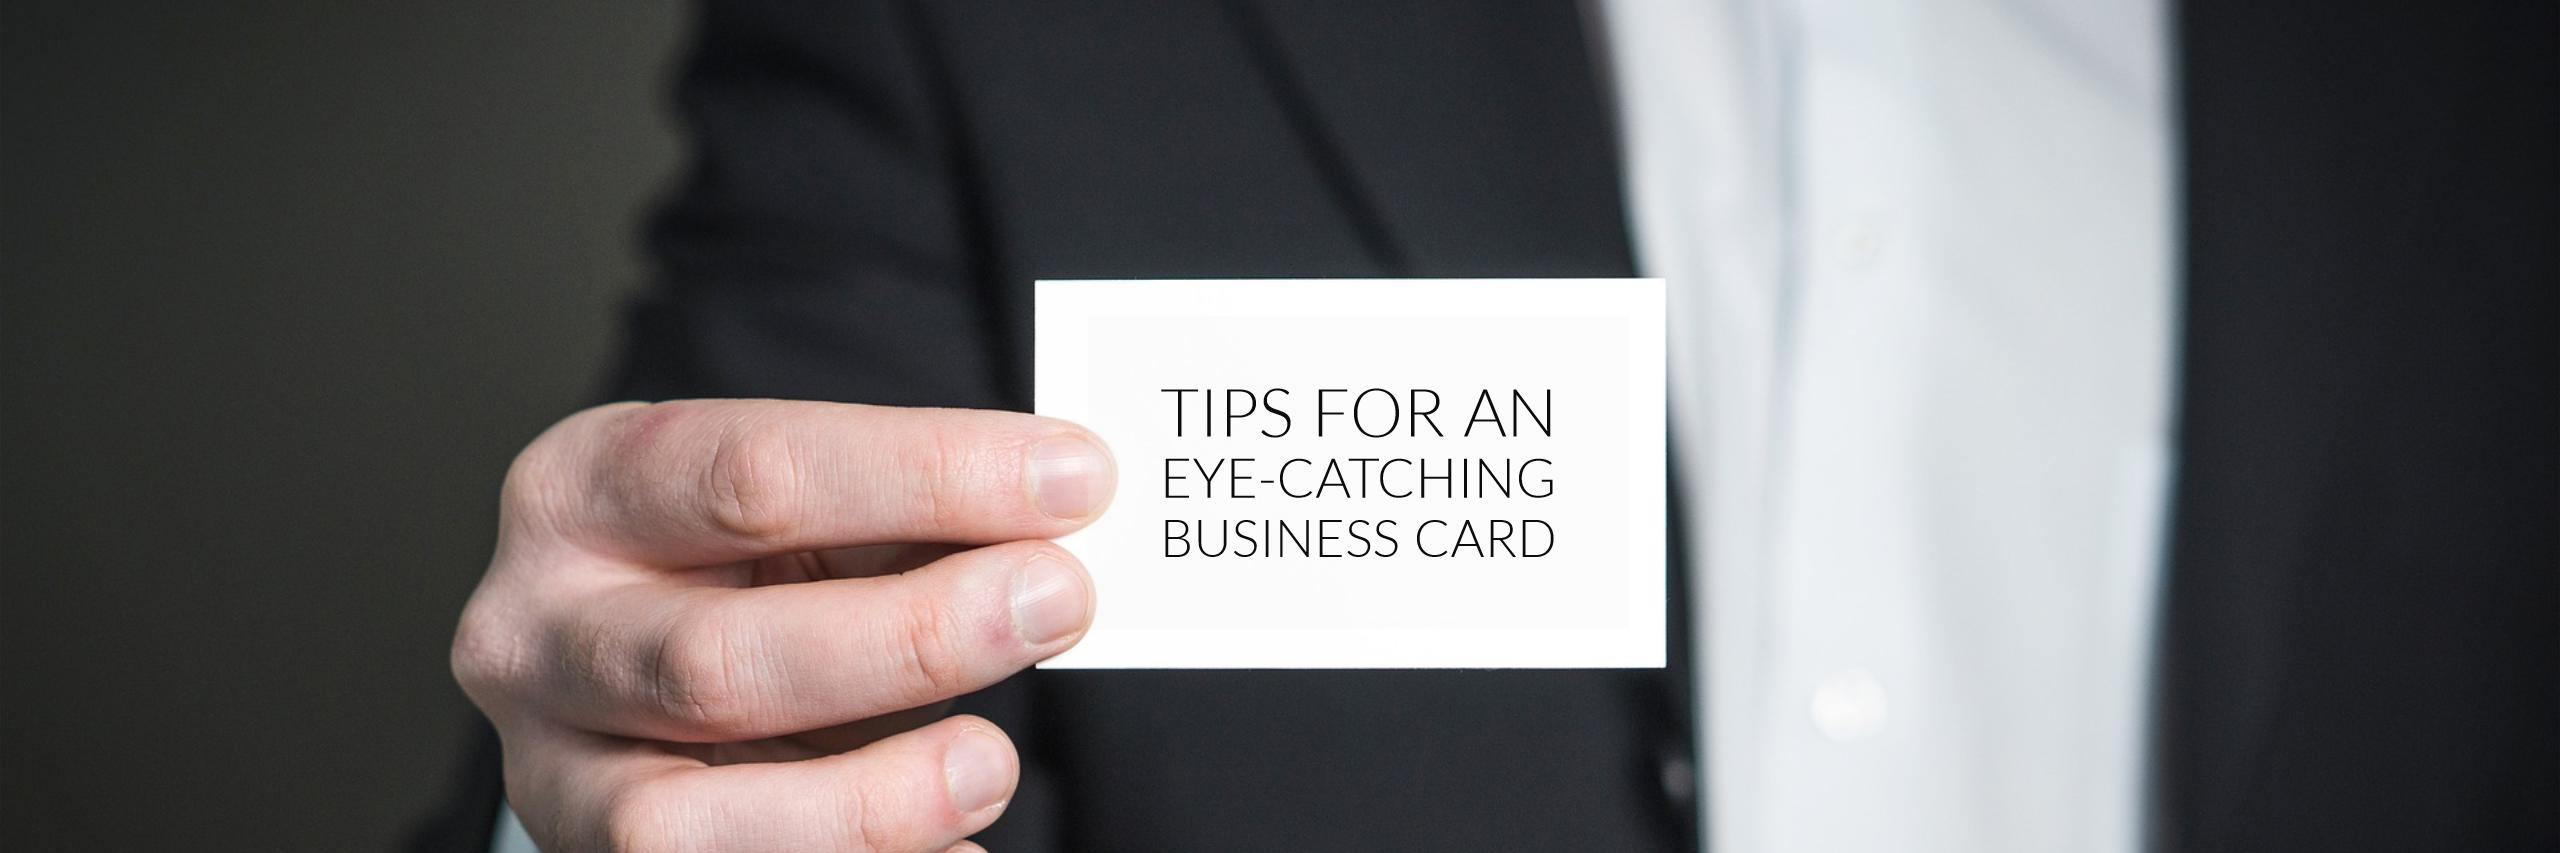 Tips for an eye catching business card old city web services business cards every professional has one but how many of them actually make an impression having business cards is common sense as a professional colourmoves